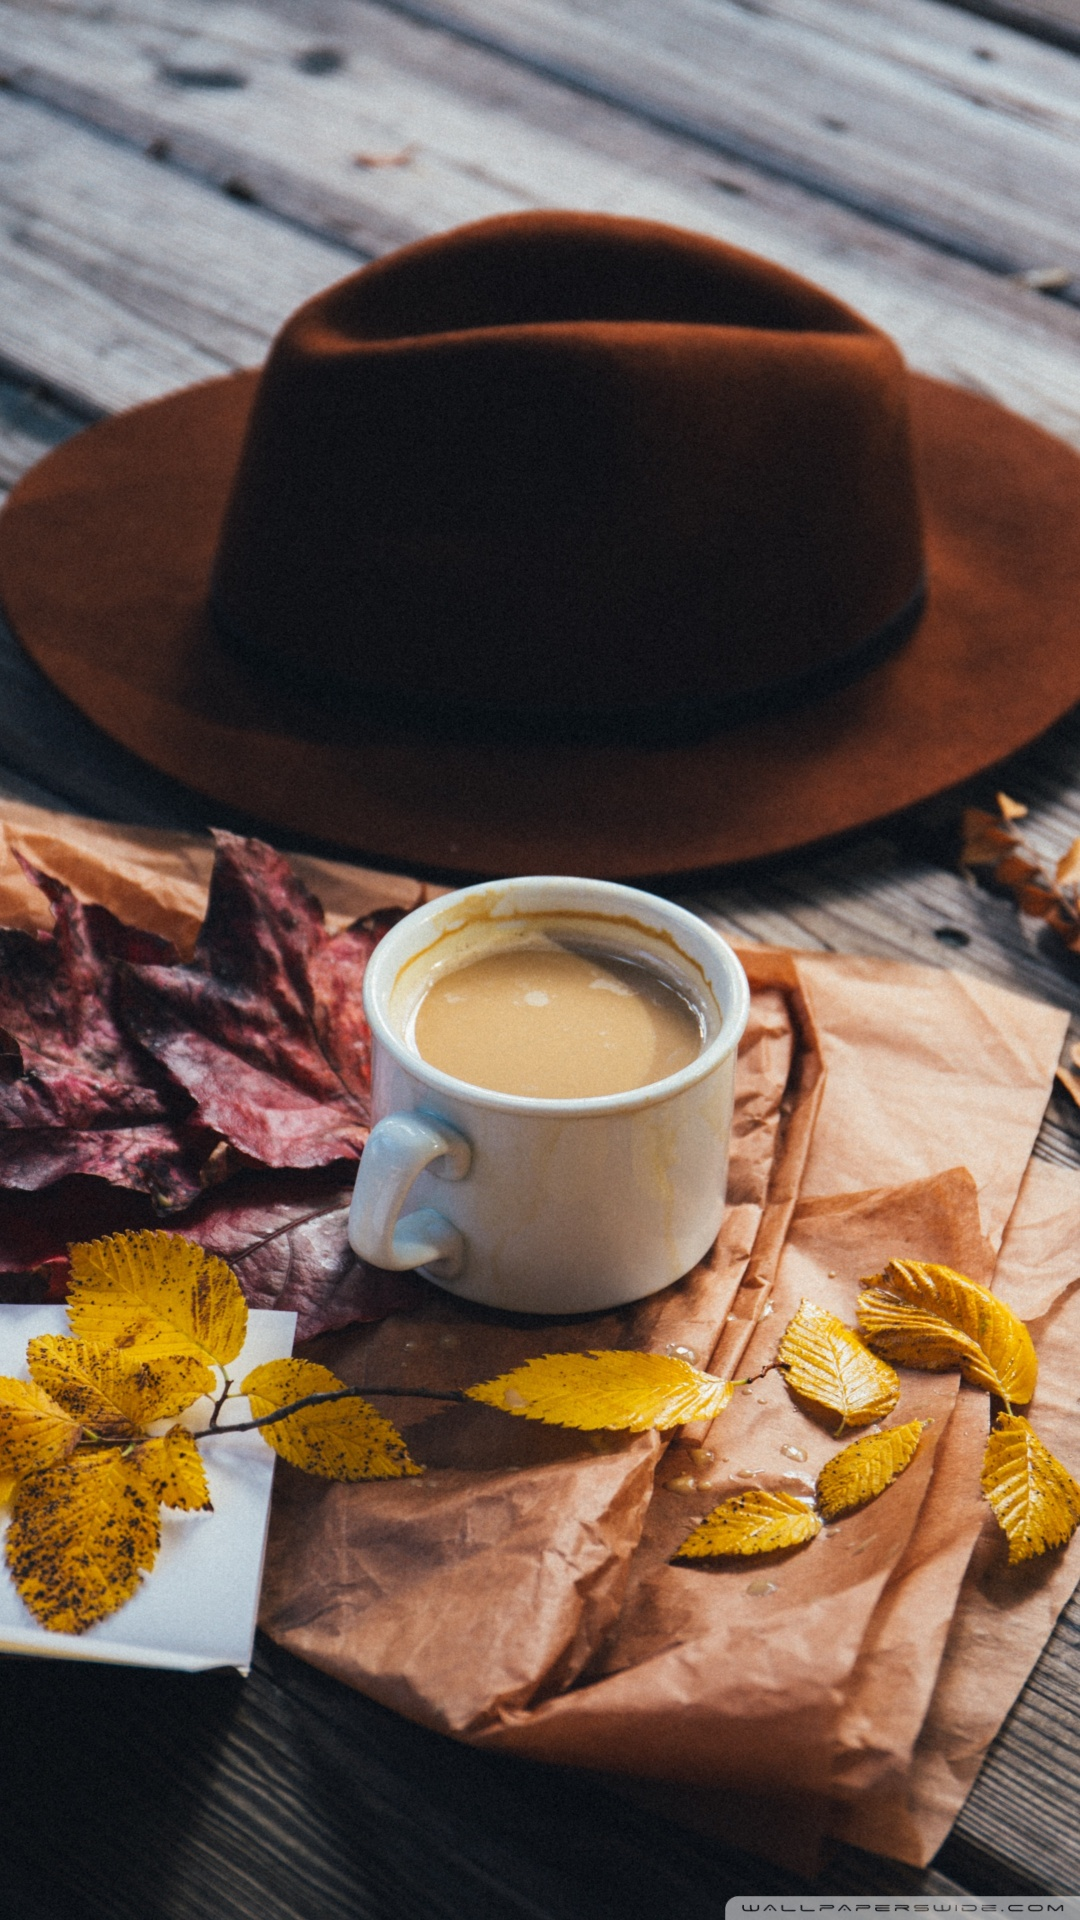 1440x2560 Uhd Wallpaper Fall Man Hat Milk With Coffee Autumn Leaves Outdoor 4k Hd